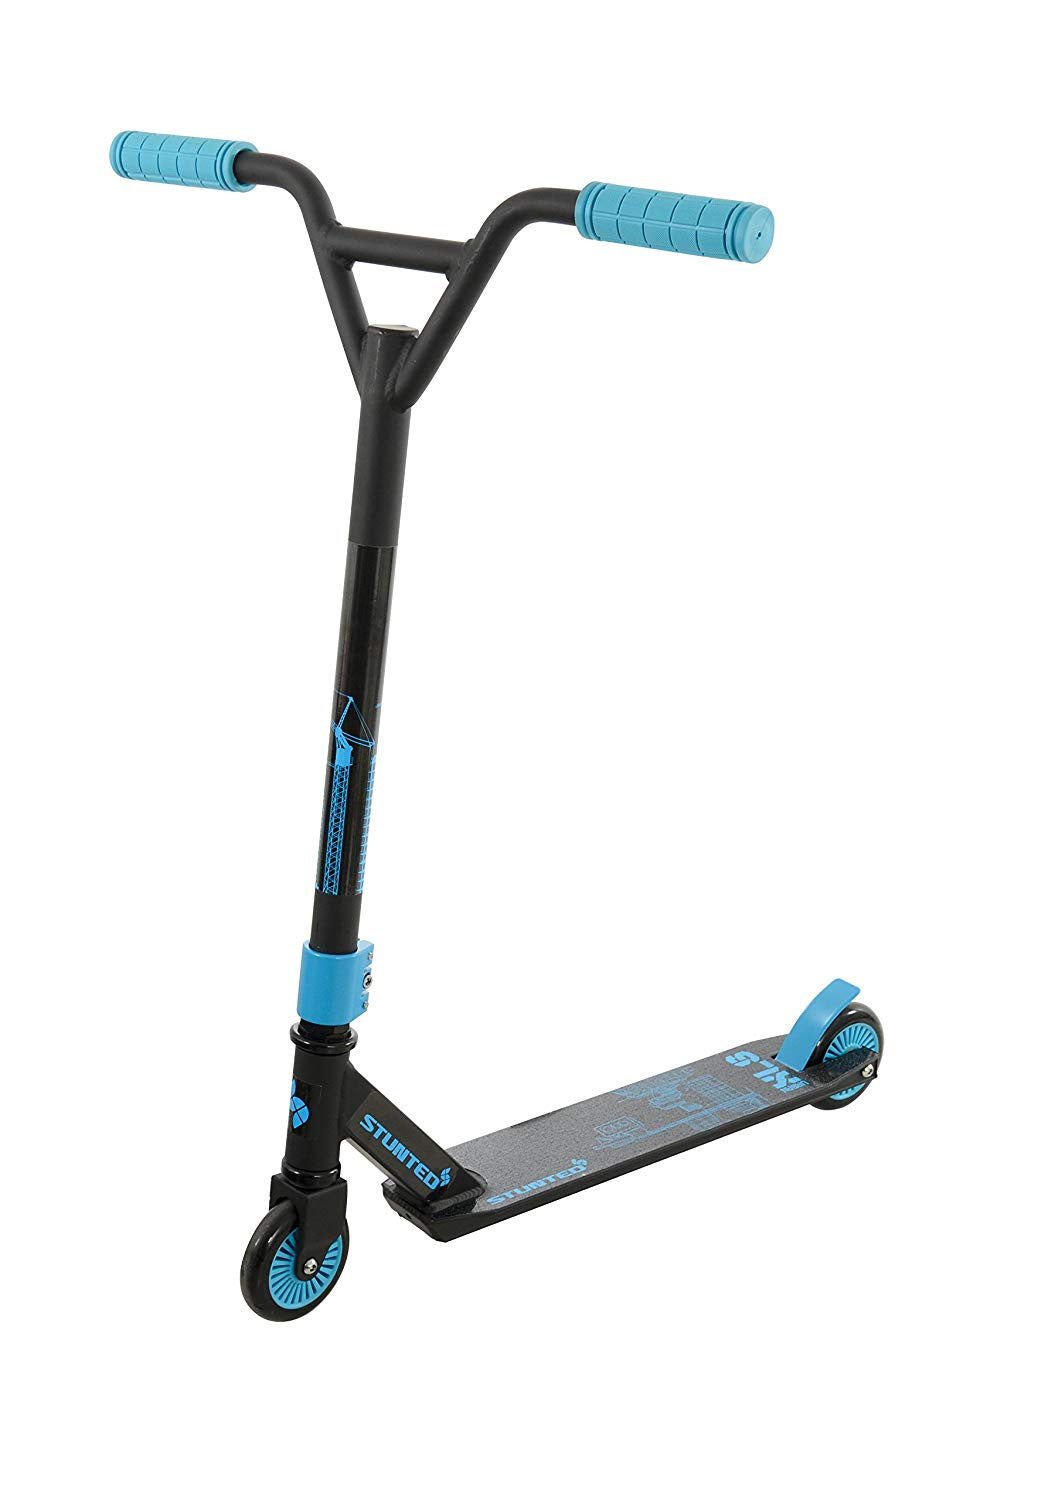 Stunted Urban XLS Scooter Aqua